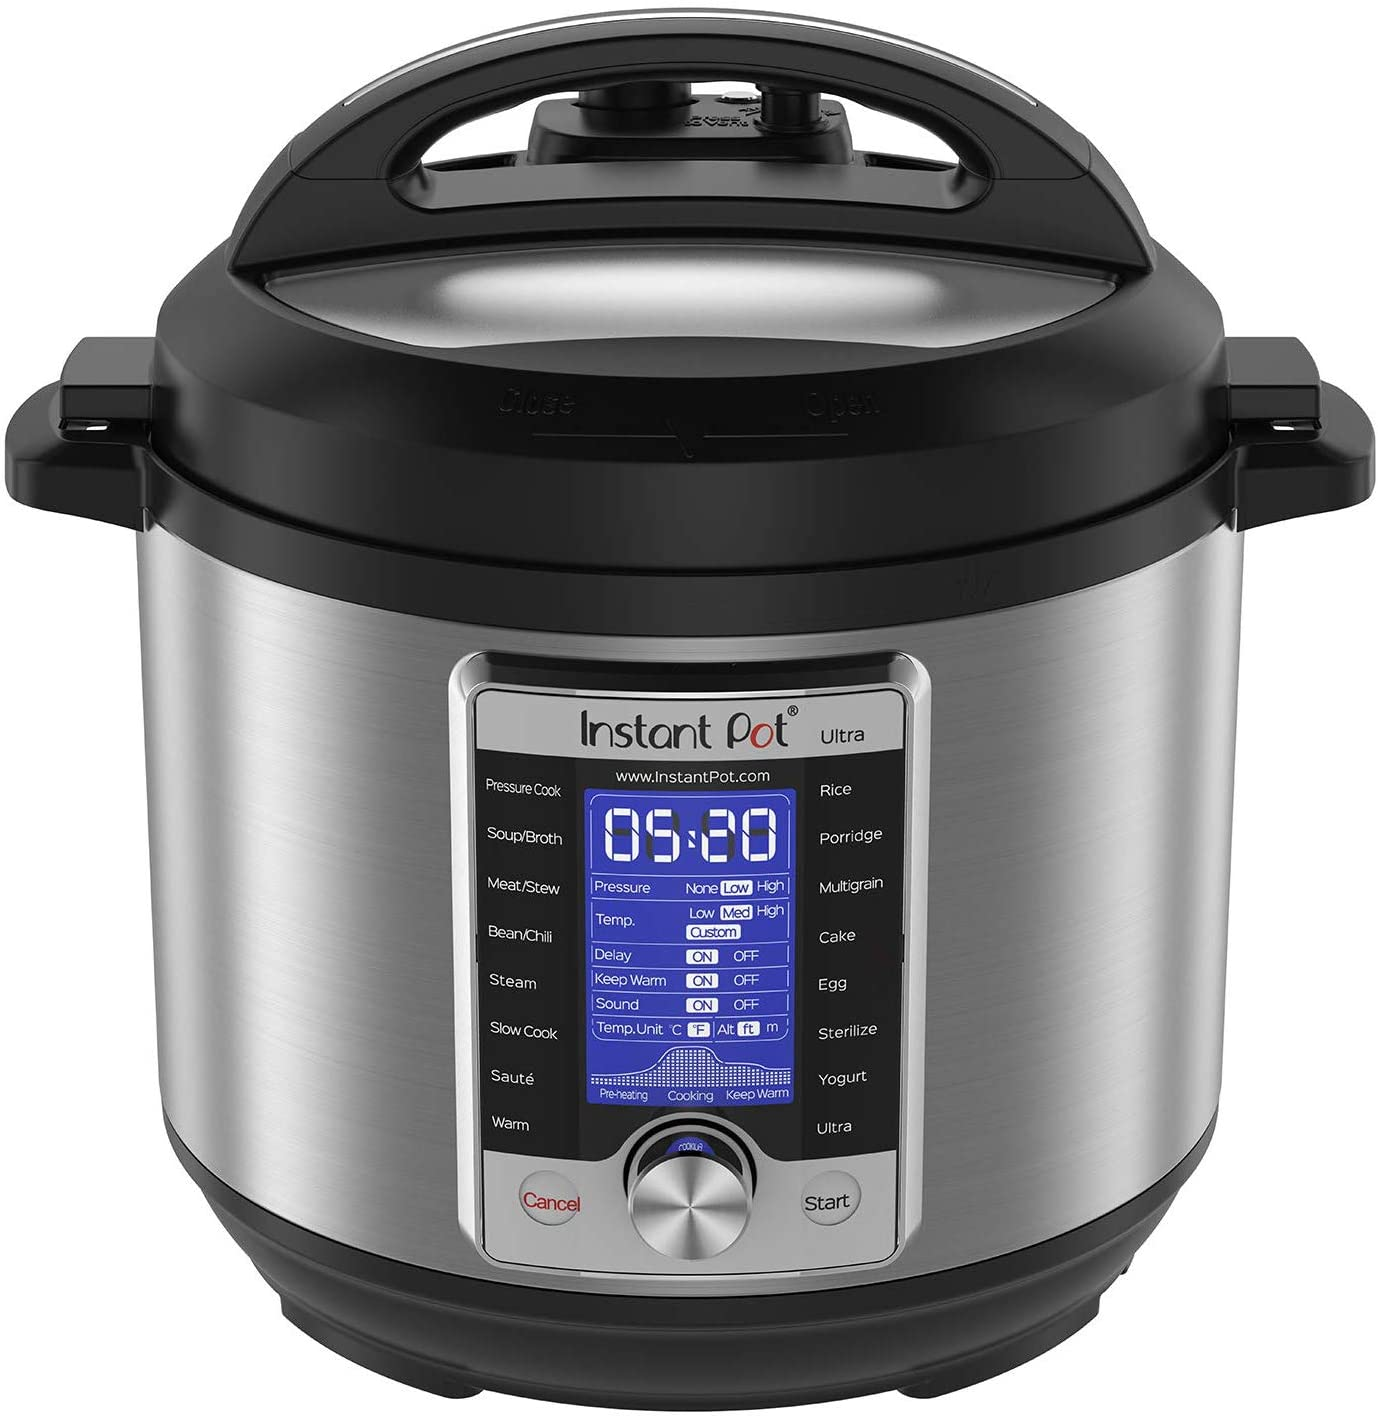 Instant Pot Electric Slow Cooker